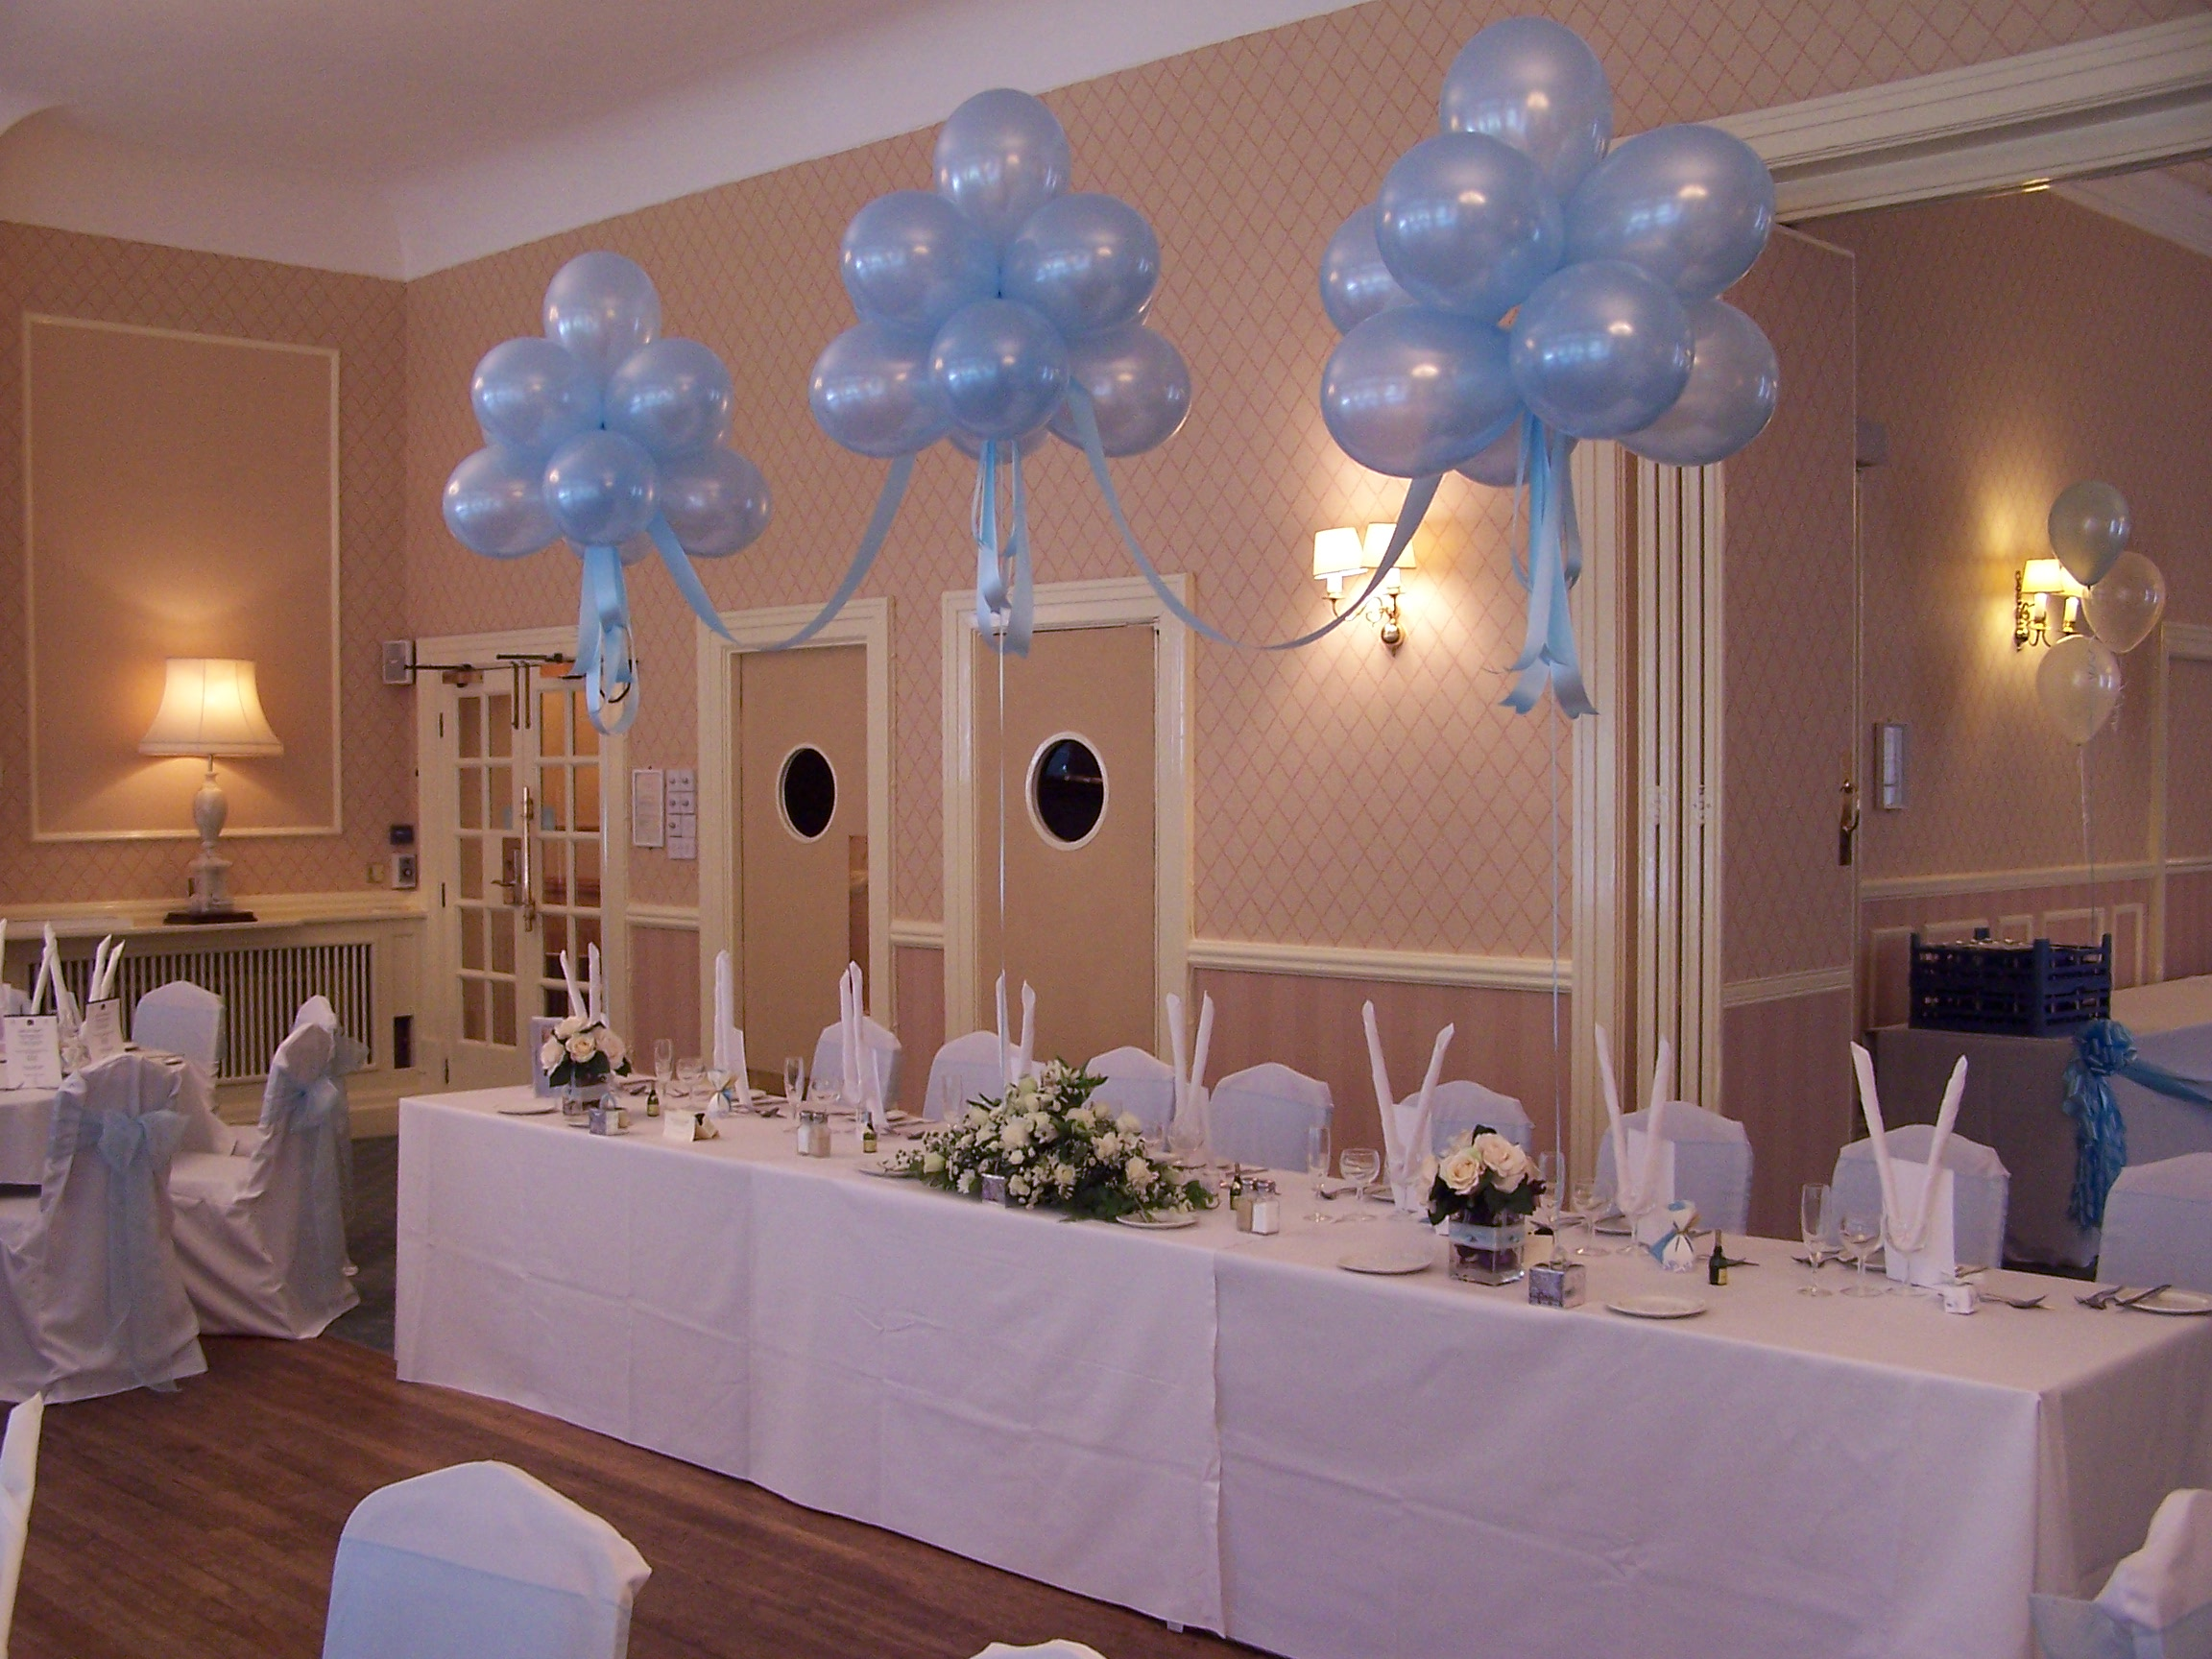 Balloon Decor - Balloon and Party Ideas